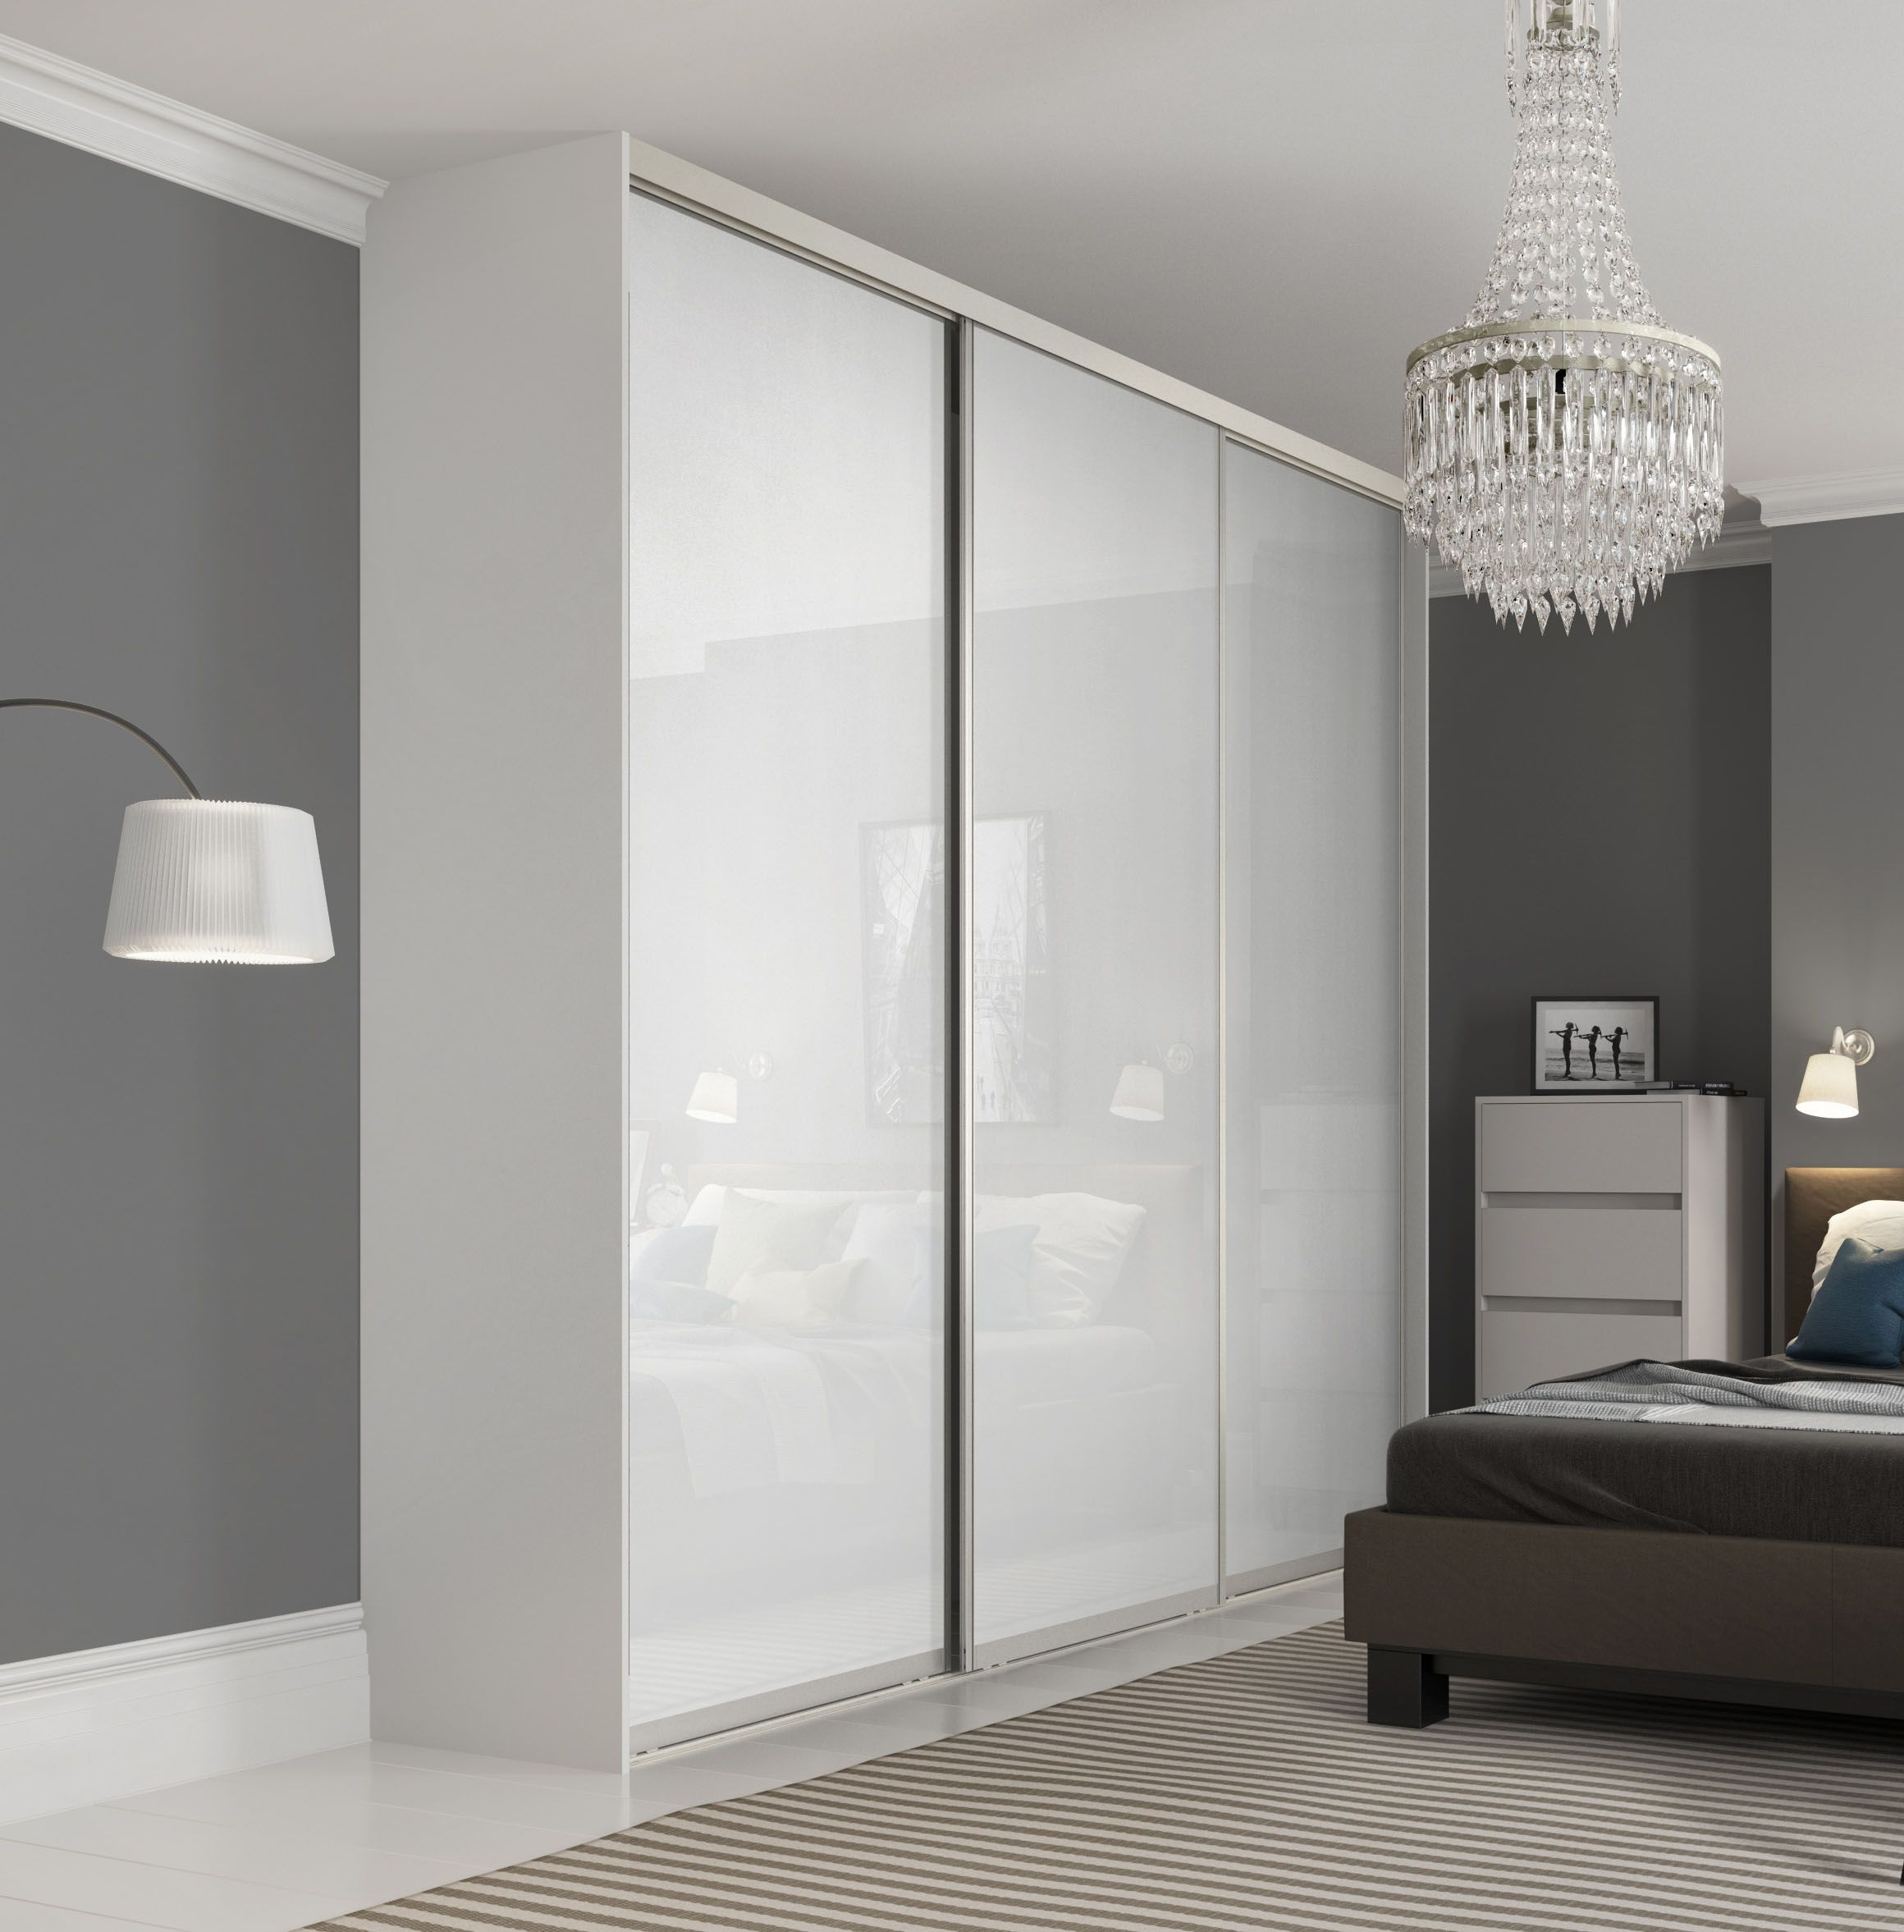 Premium Midi Single Panel Sliding Wardrobe Doors In Pure White Gl With Satin Silver Frame